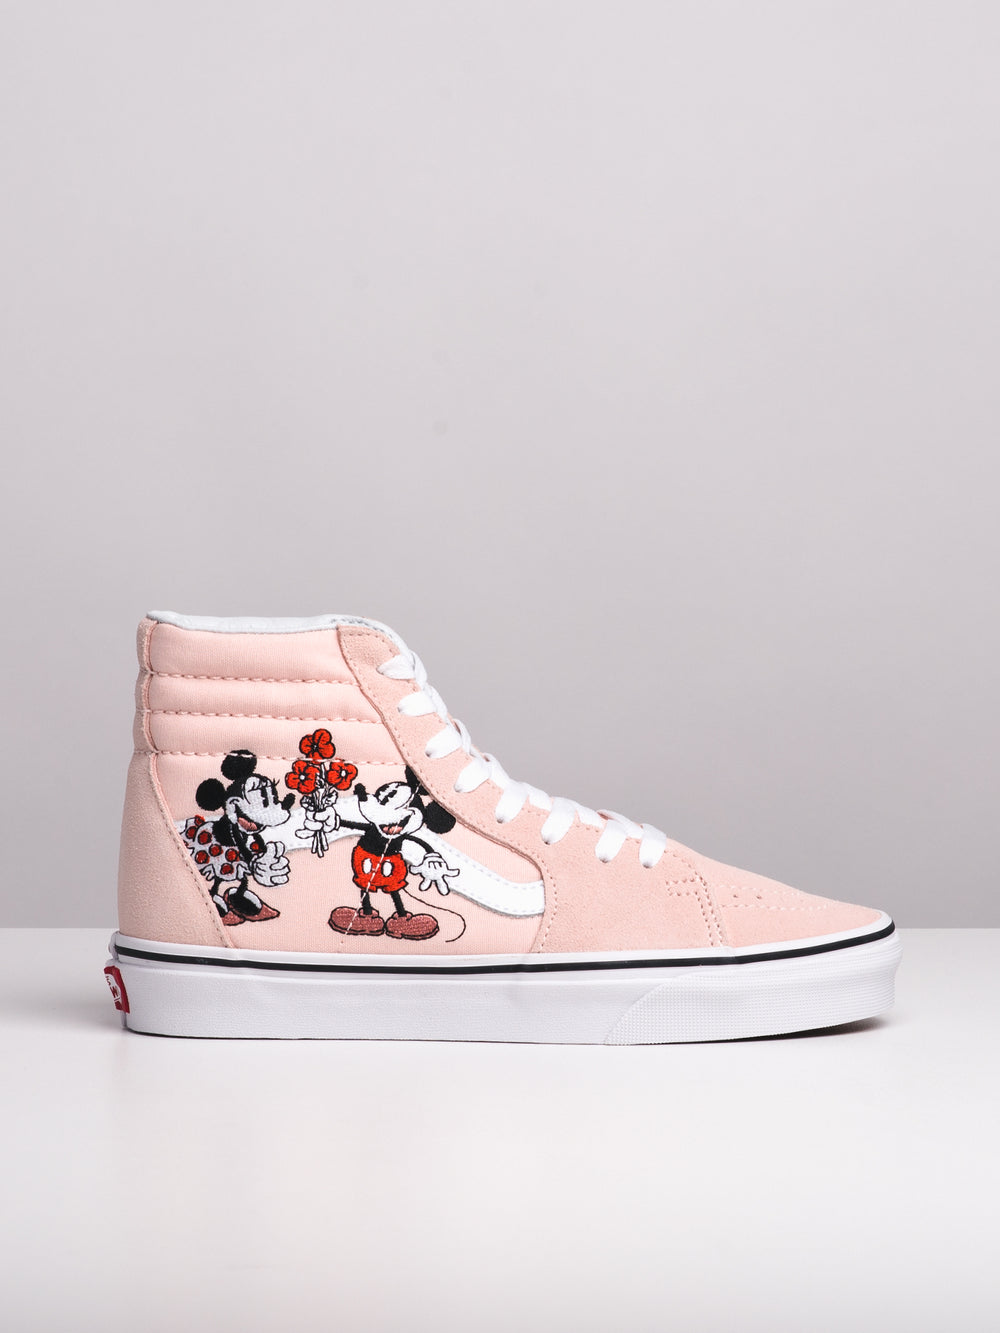 WOMENS DISNEY SK8 HI MICKEY   MINNIE ff2d84056